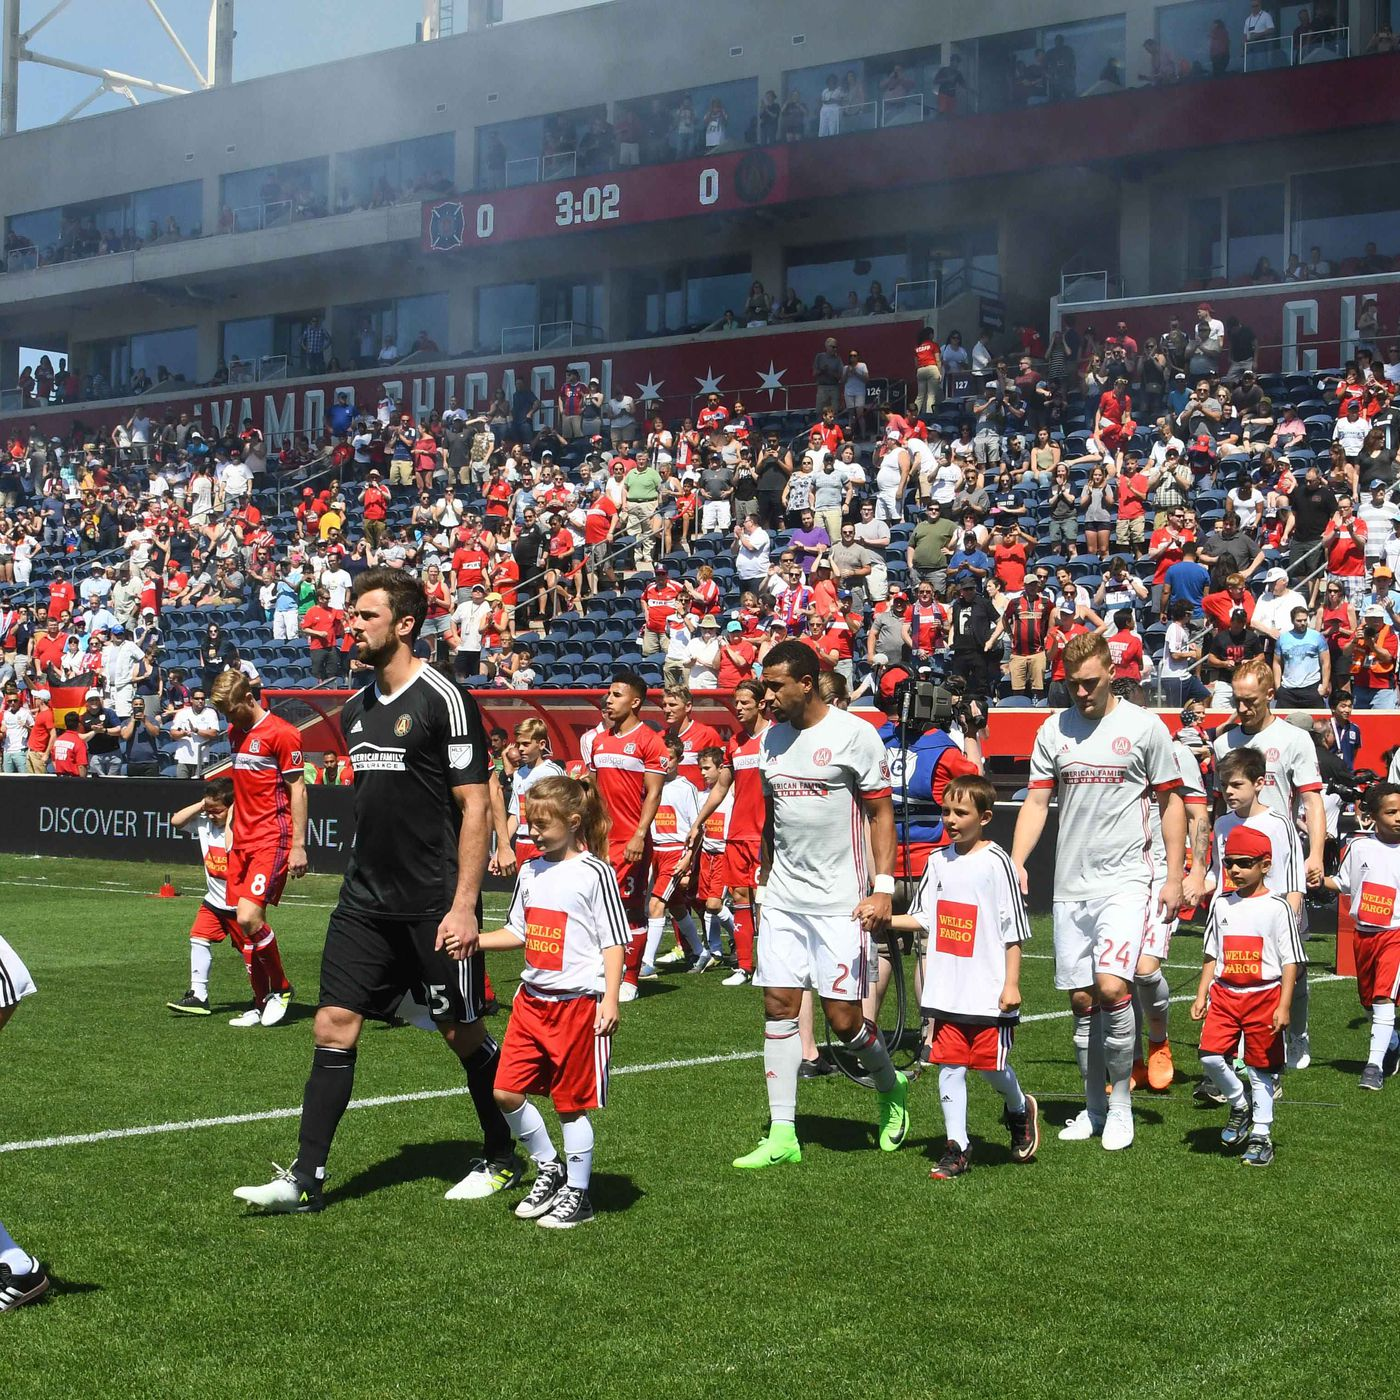 Chicago Fire vs Atlanta United: Lineups, Game Highlights, and How to